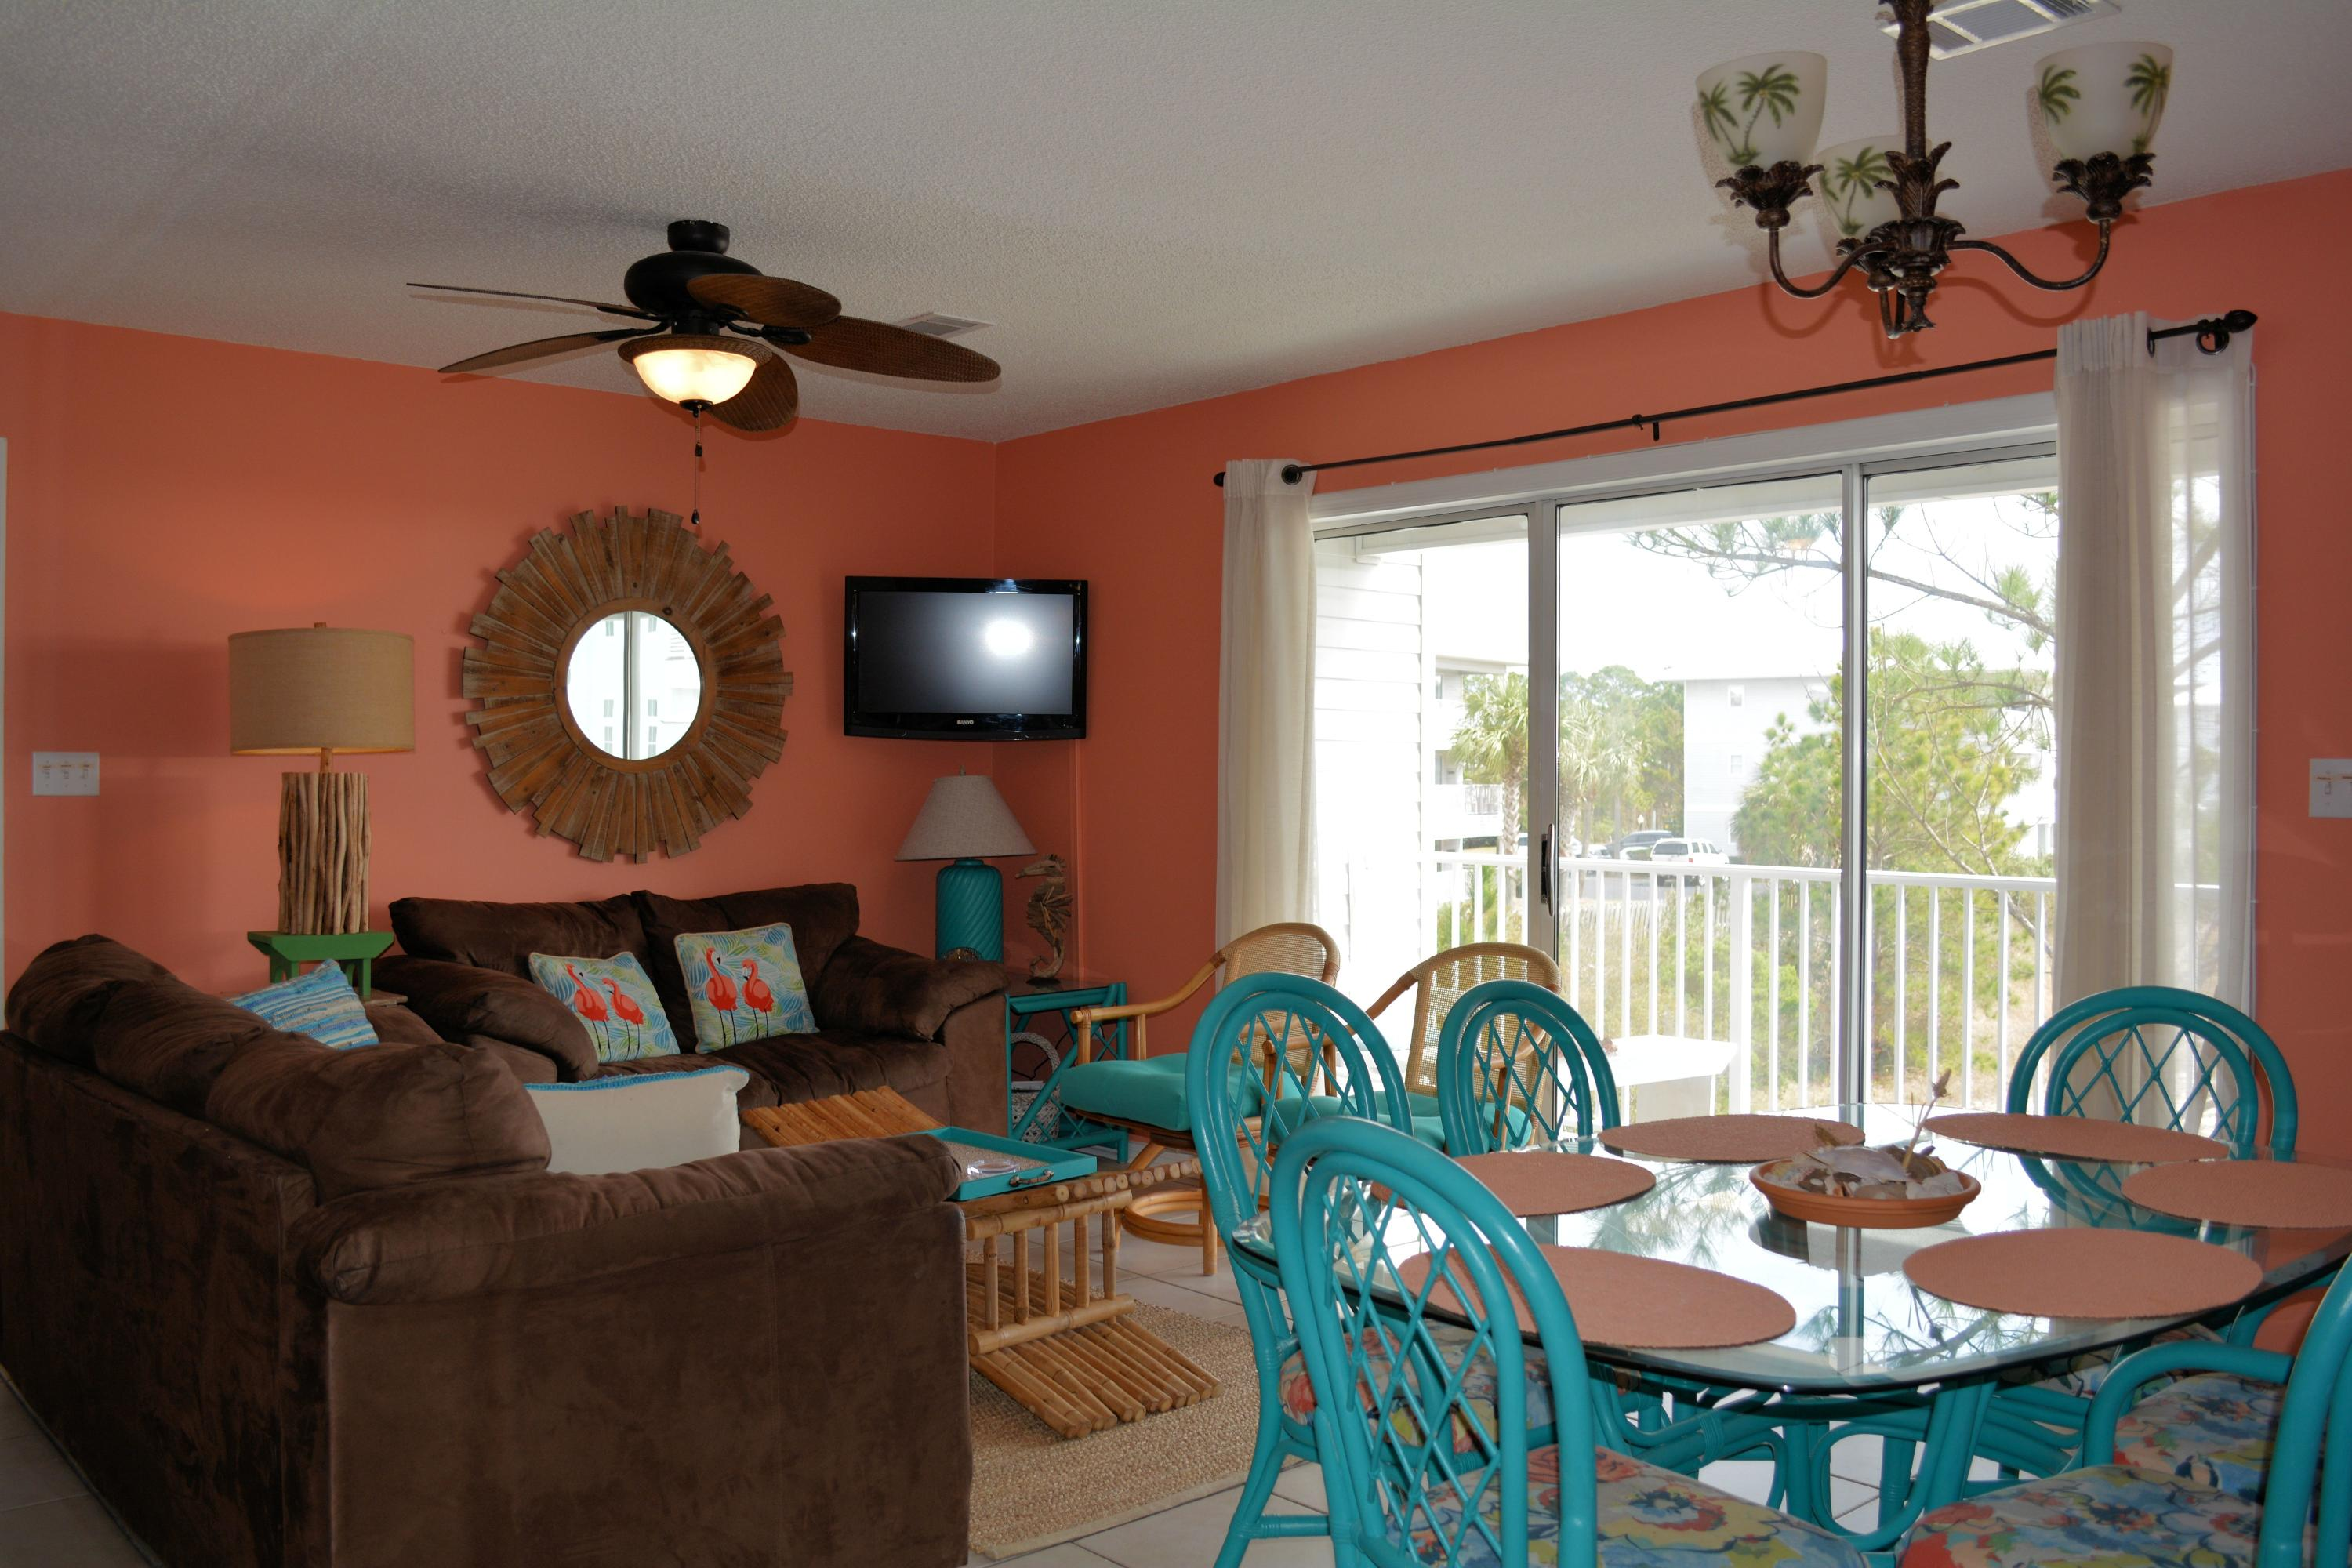 UNIT IS BEING SOLD FURNISHED.  FRESHLY PAINTED IN TROPICAL COLORS. UNIT IS AN ESTIMATED 100 YARDS TO THE BEAUTIFUL GULF OF MEXICO AND THE PURE WHITE SANDY BEACHES.